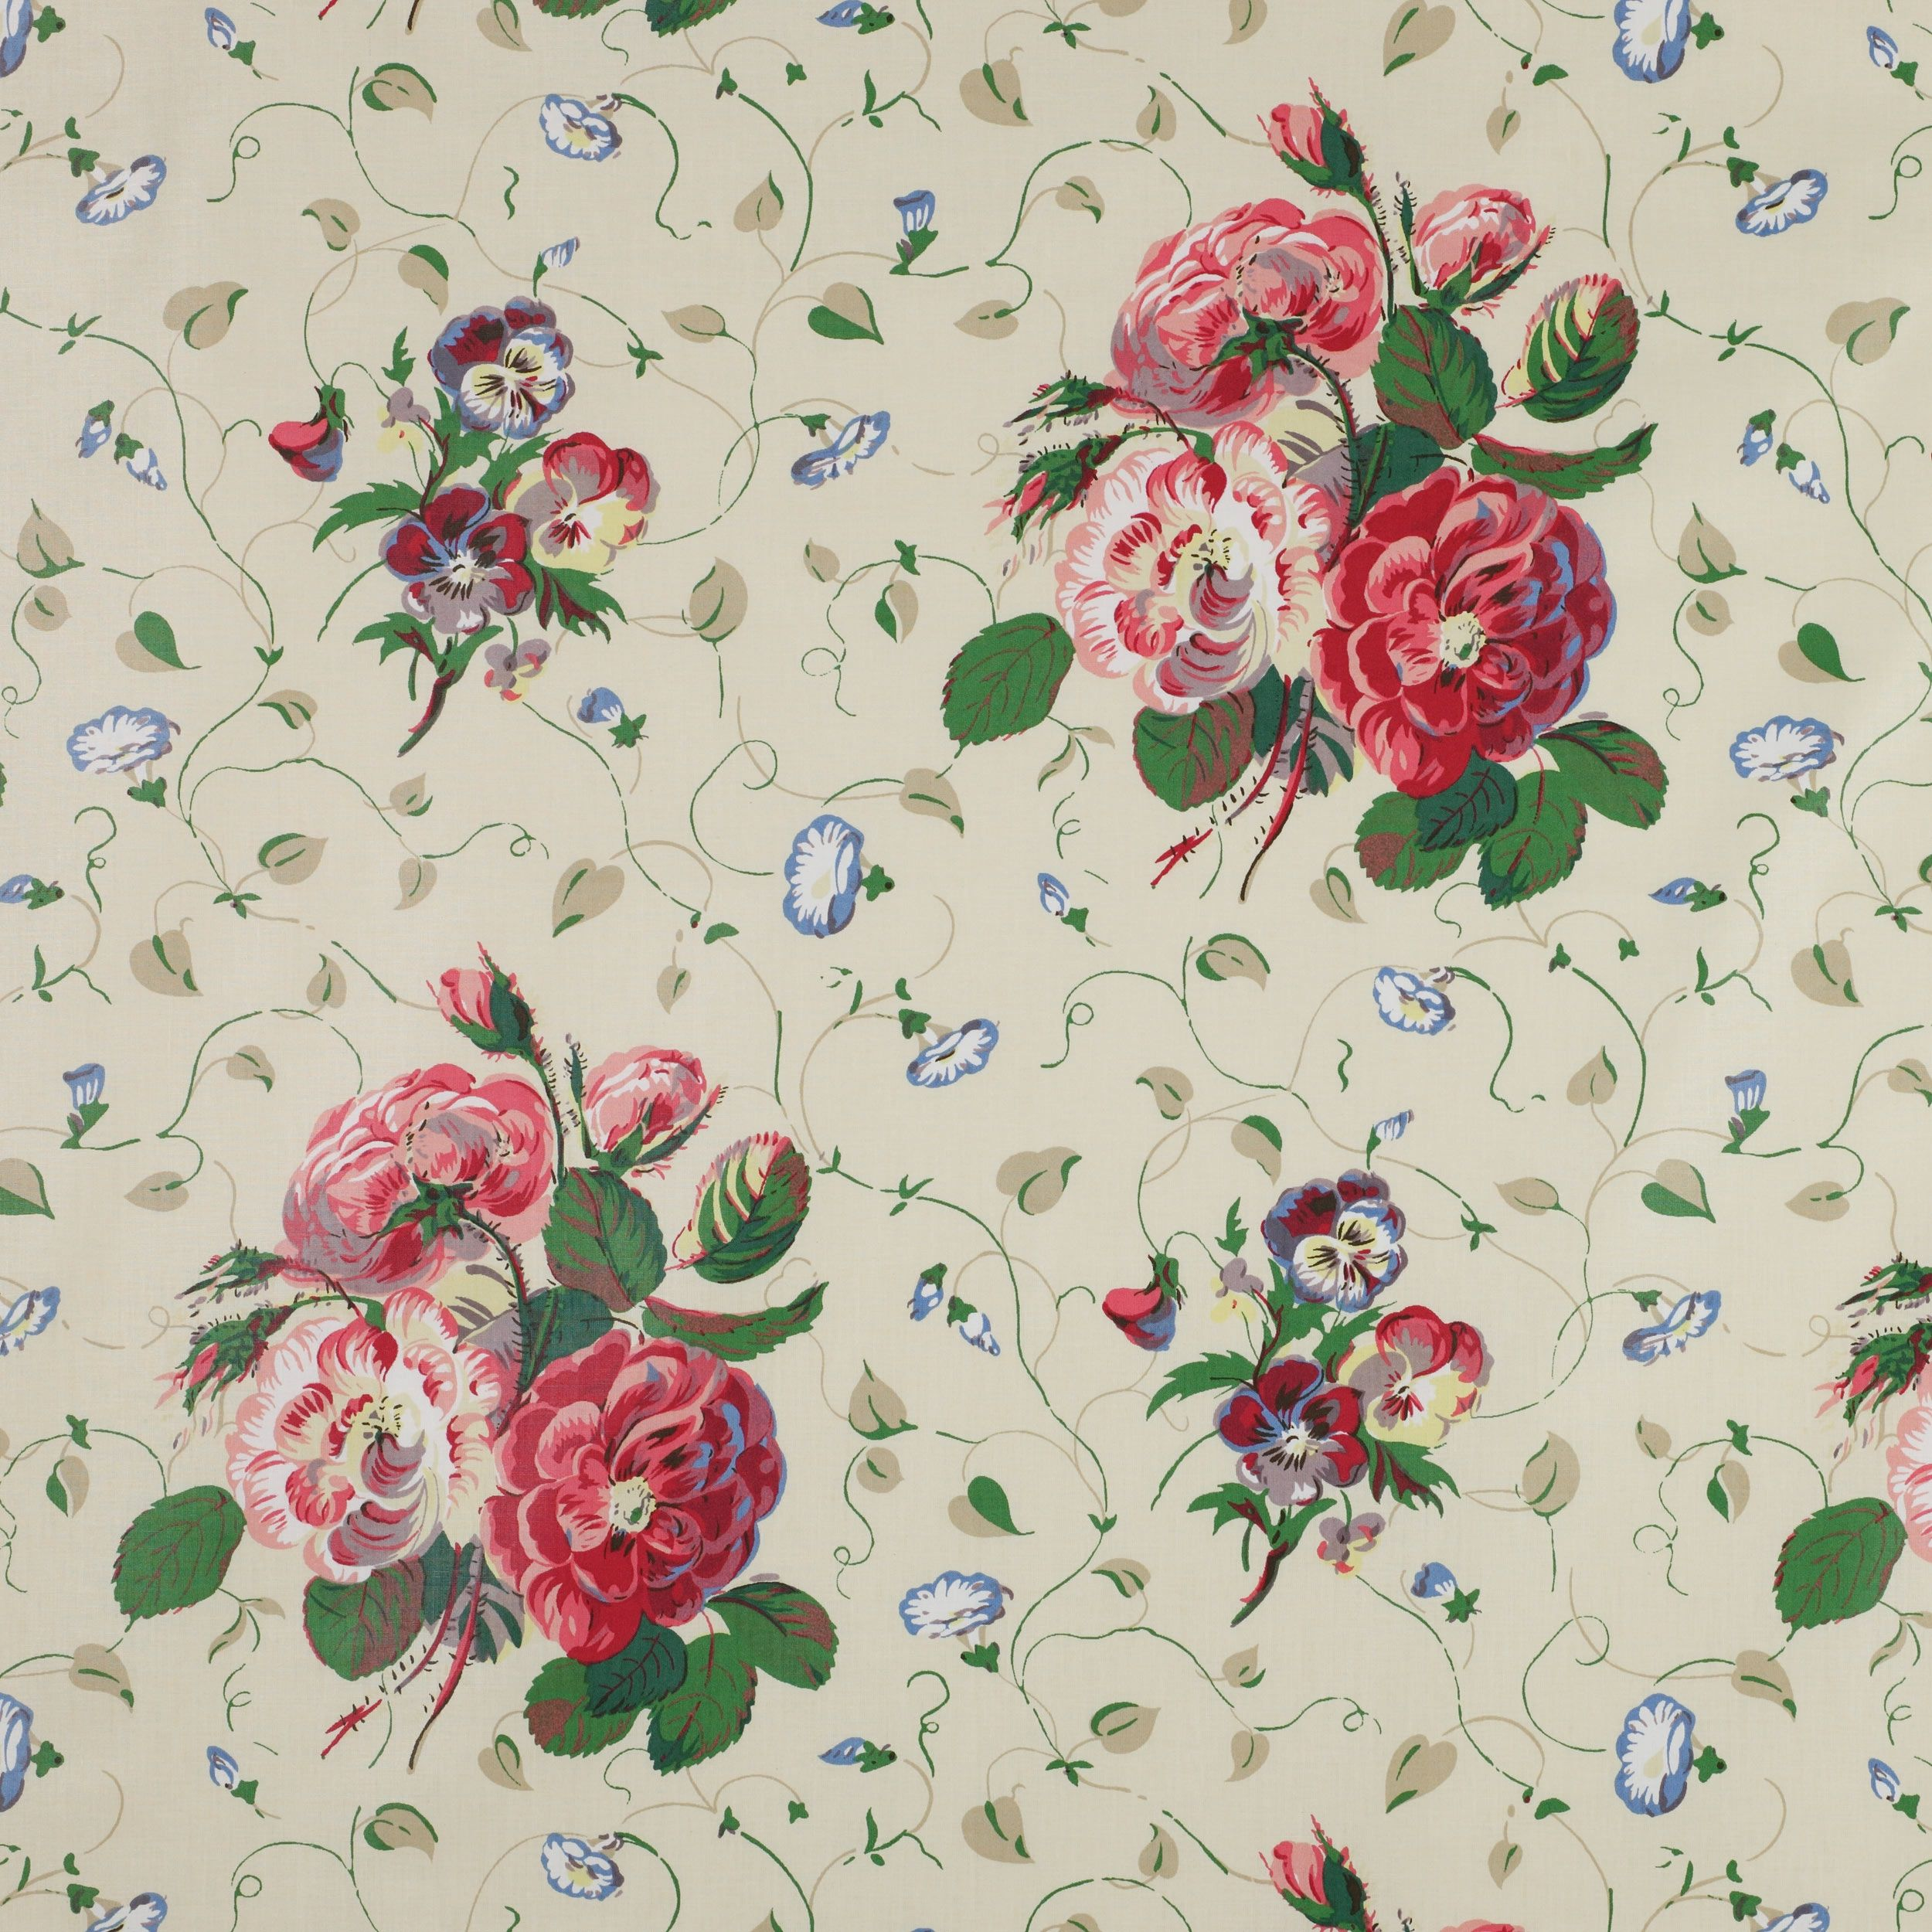 Colefax And Fowler S Roses Pansies Colefaxandfowler Floral Textile Fabric Interiors Design Cowtanandtout Chintz Fabric Fabric Wallpaper Mural Stencil